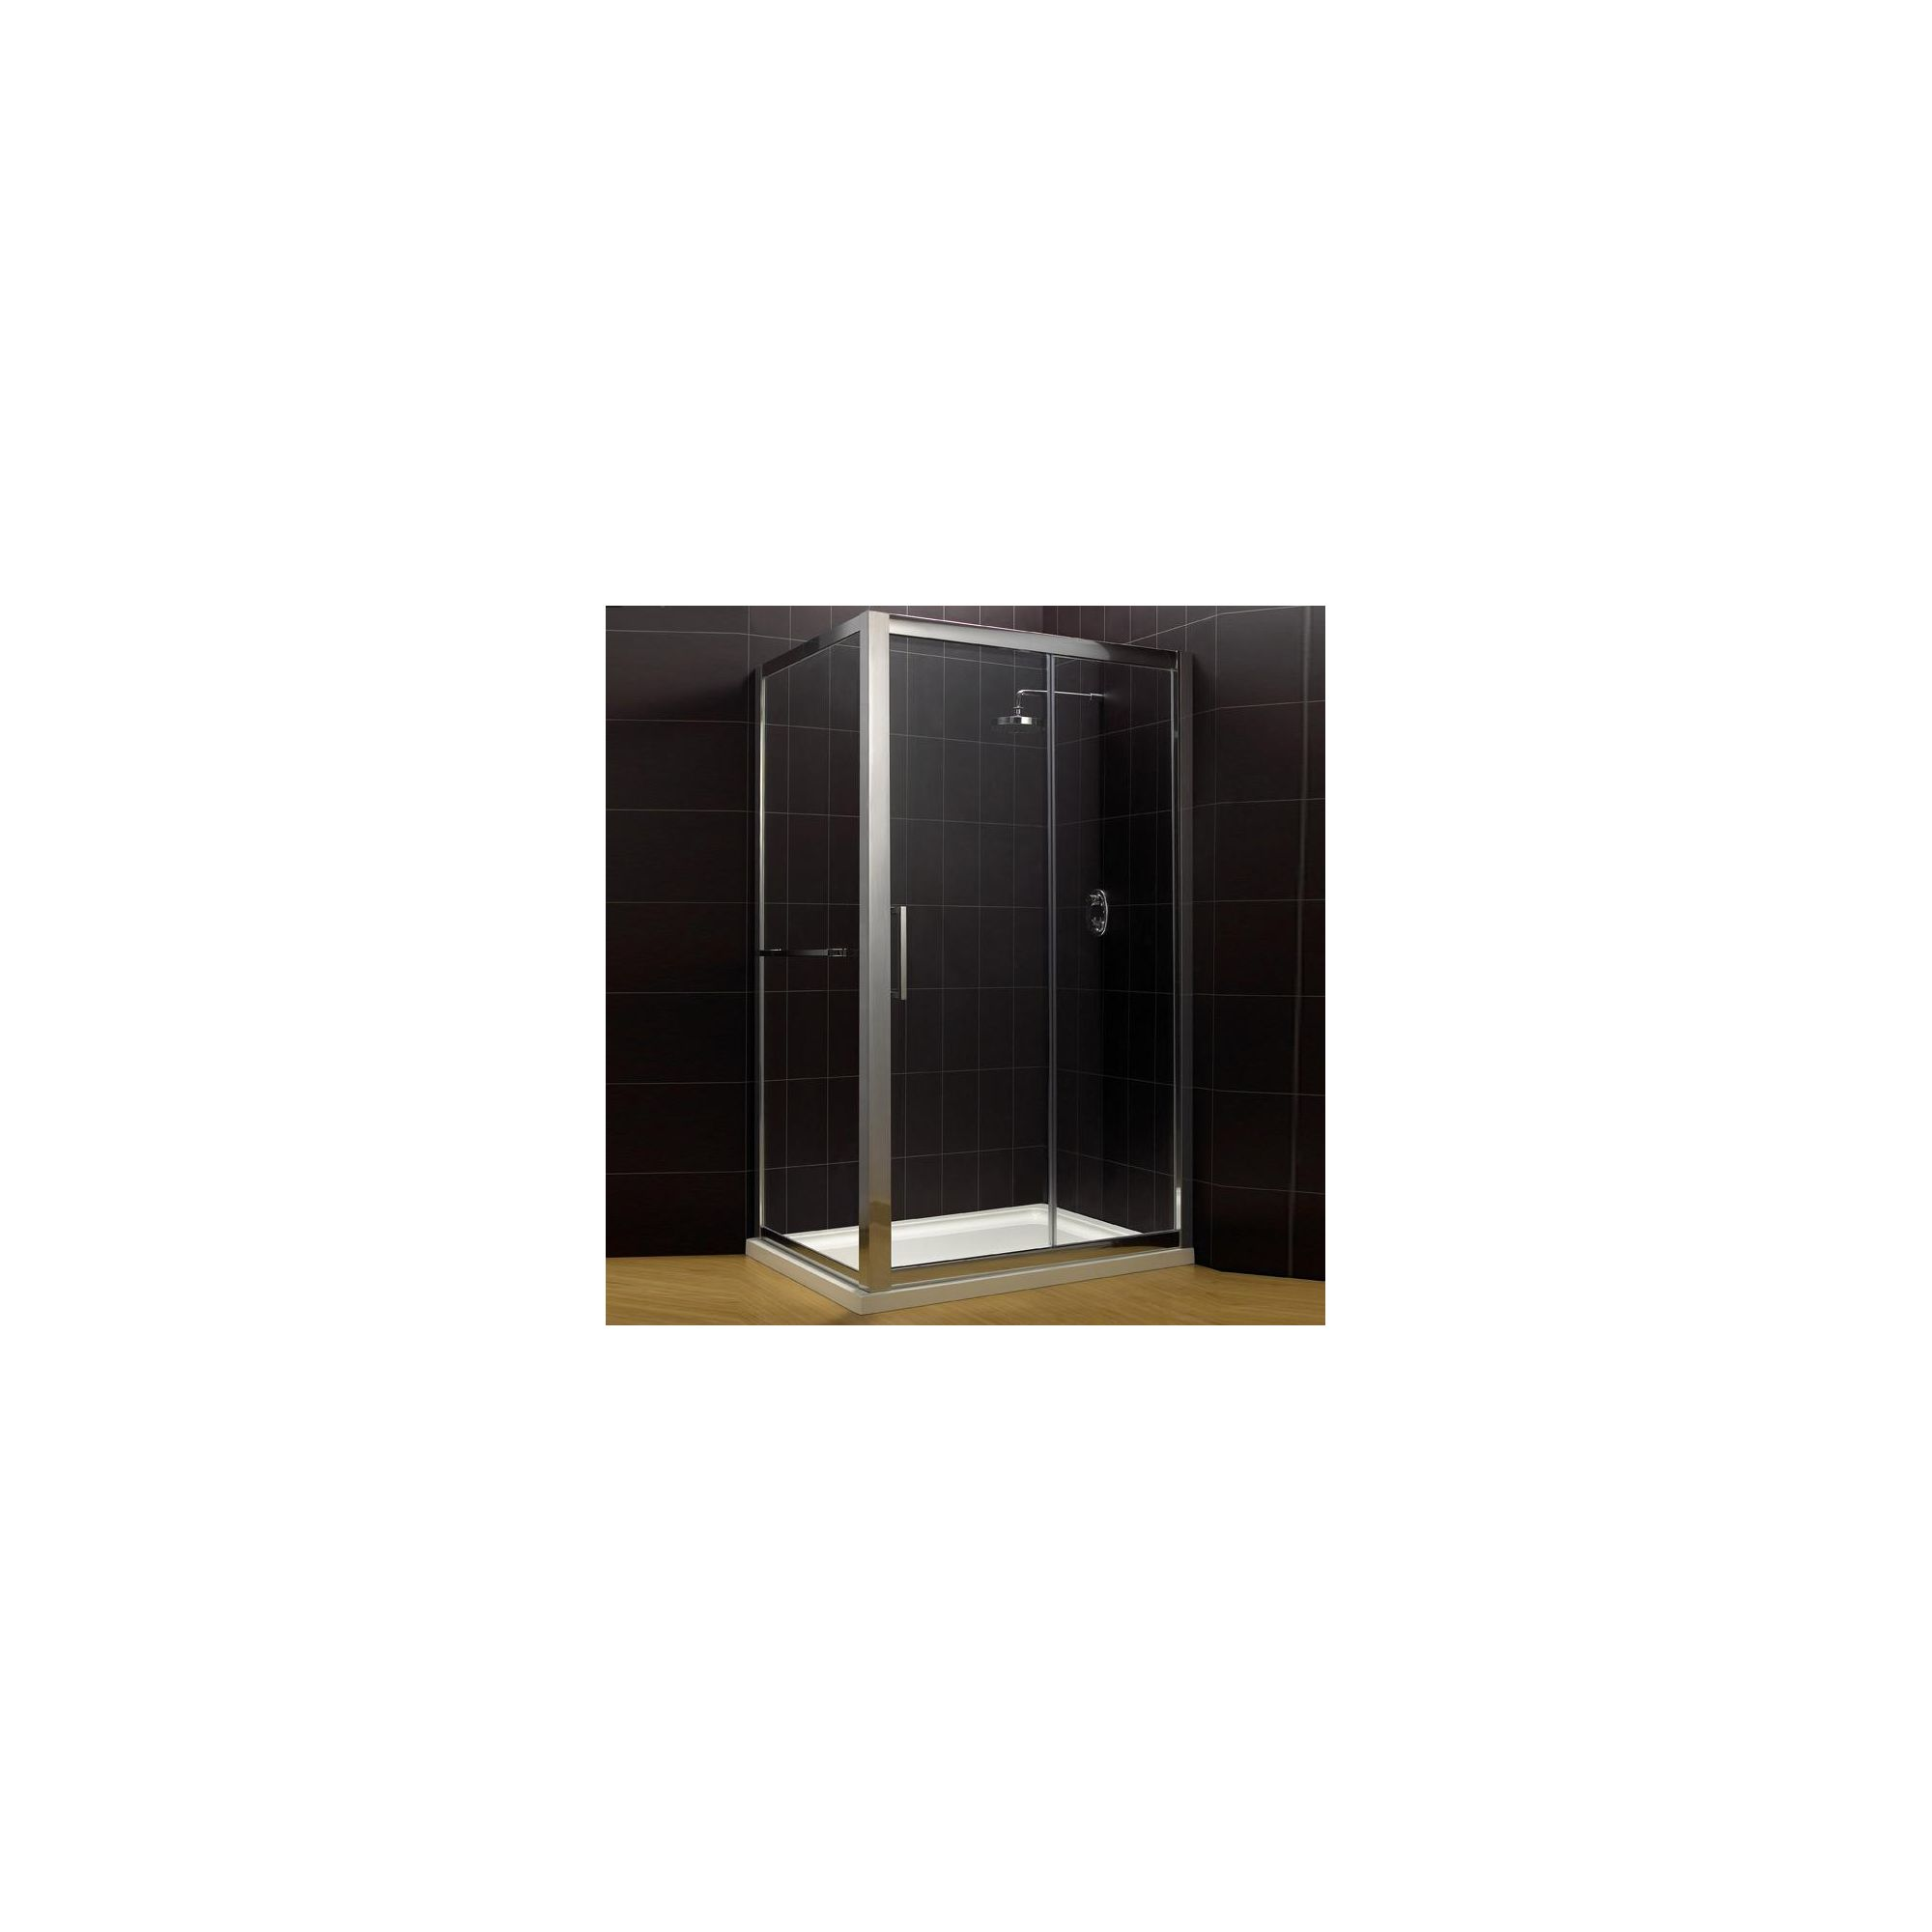 Duchy Supreme Silver Sliding Door Shower Enclosure with Towel Rail, 1600mm x 700mm, Standard Tray, 8mm Glass at Tesco Direct